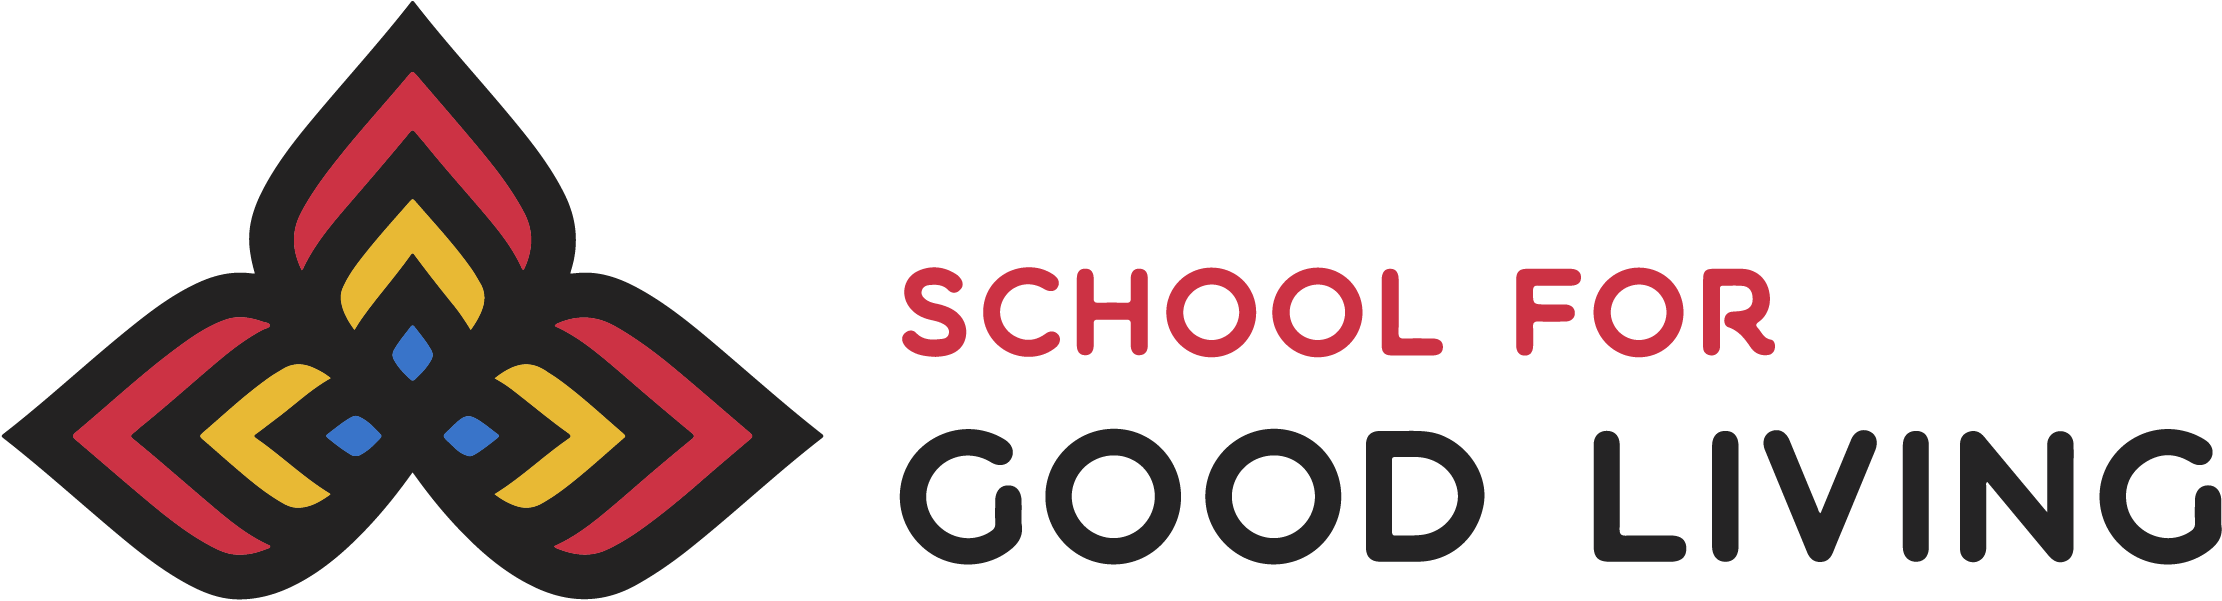 School For Good Living Logo